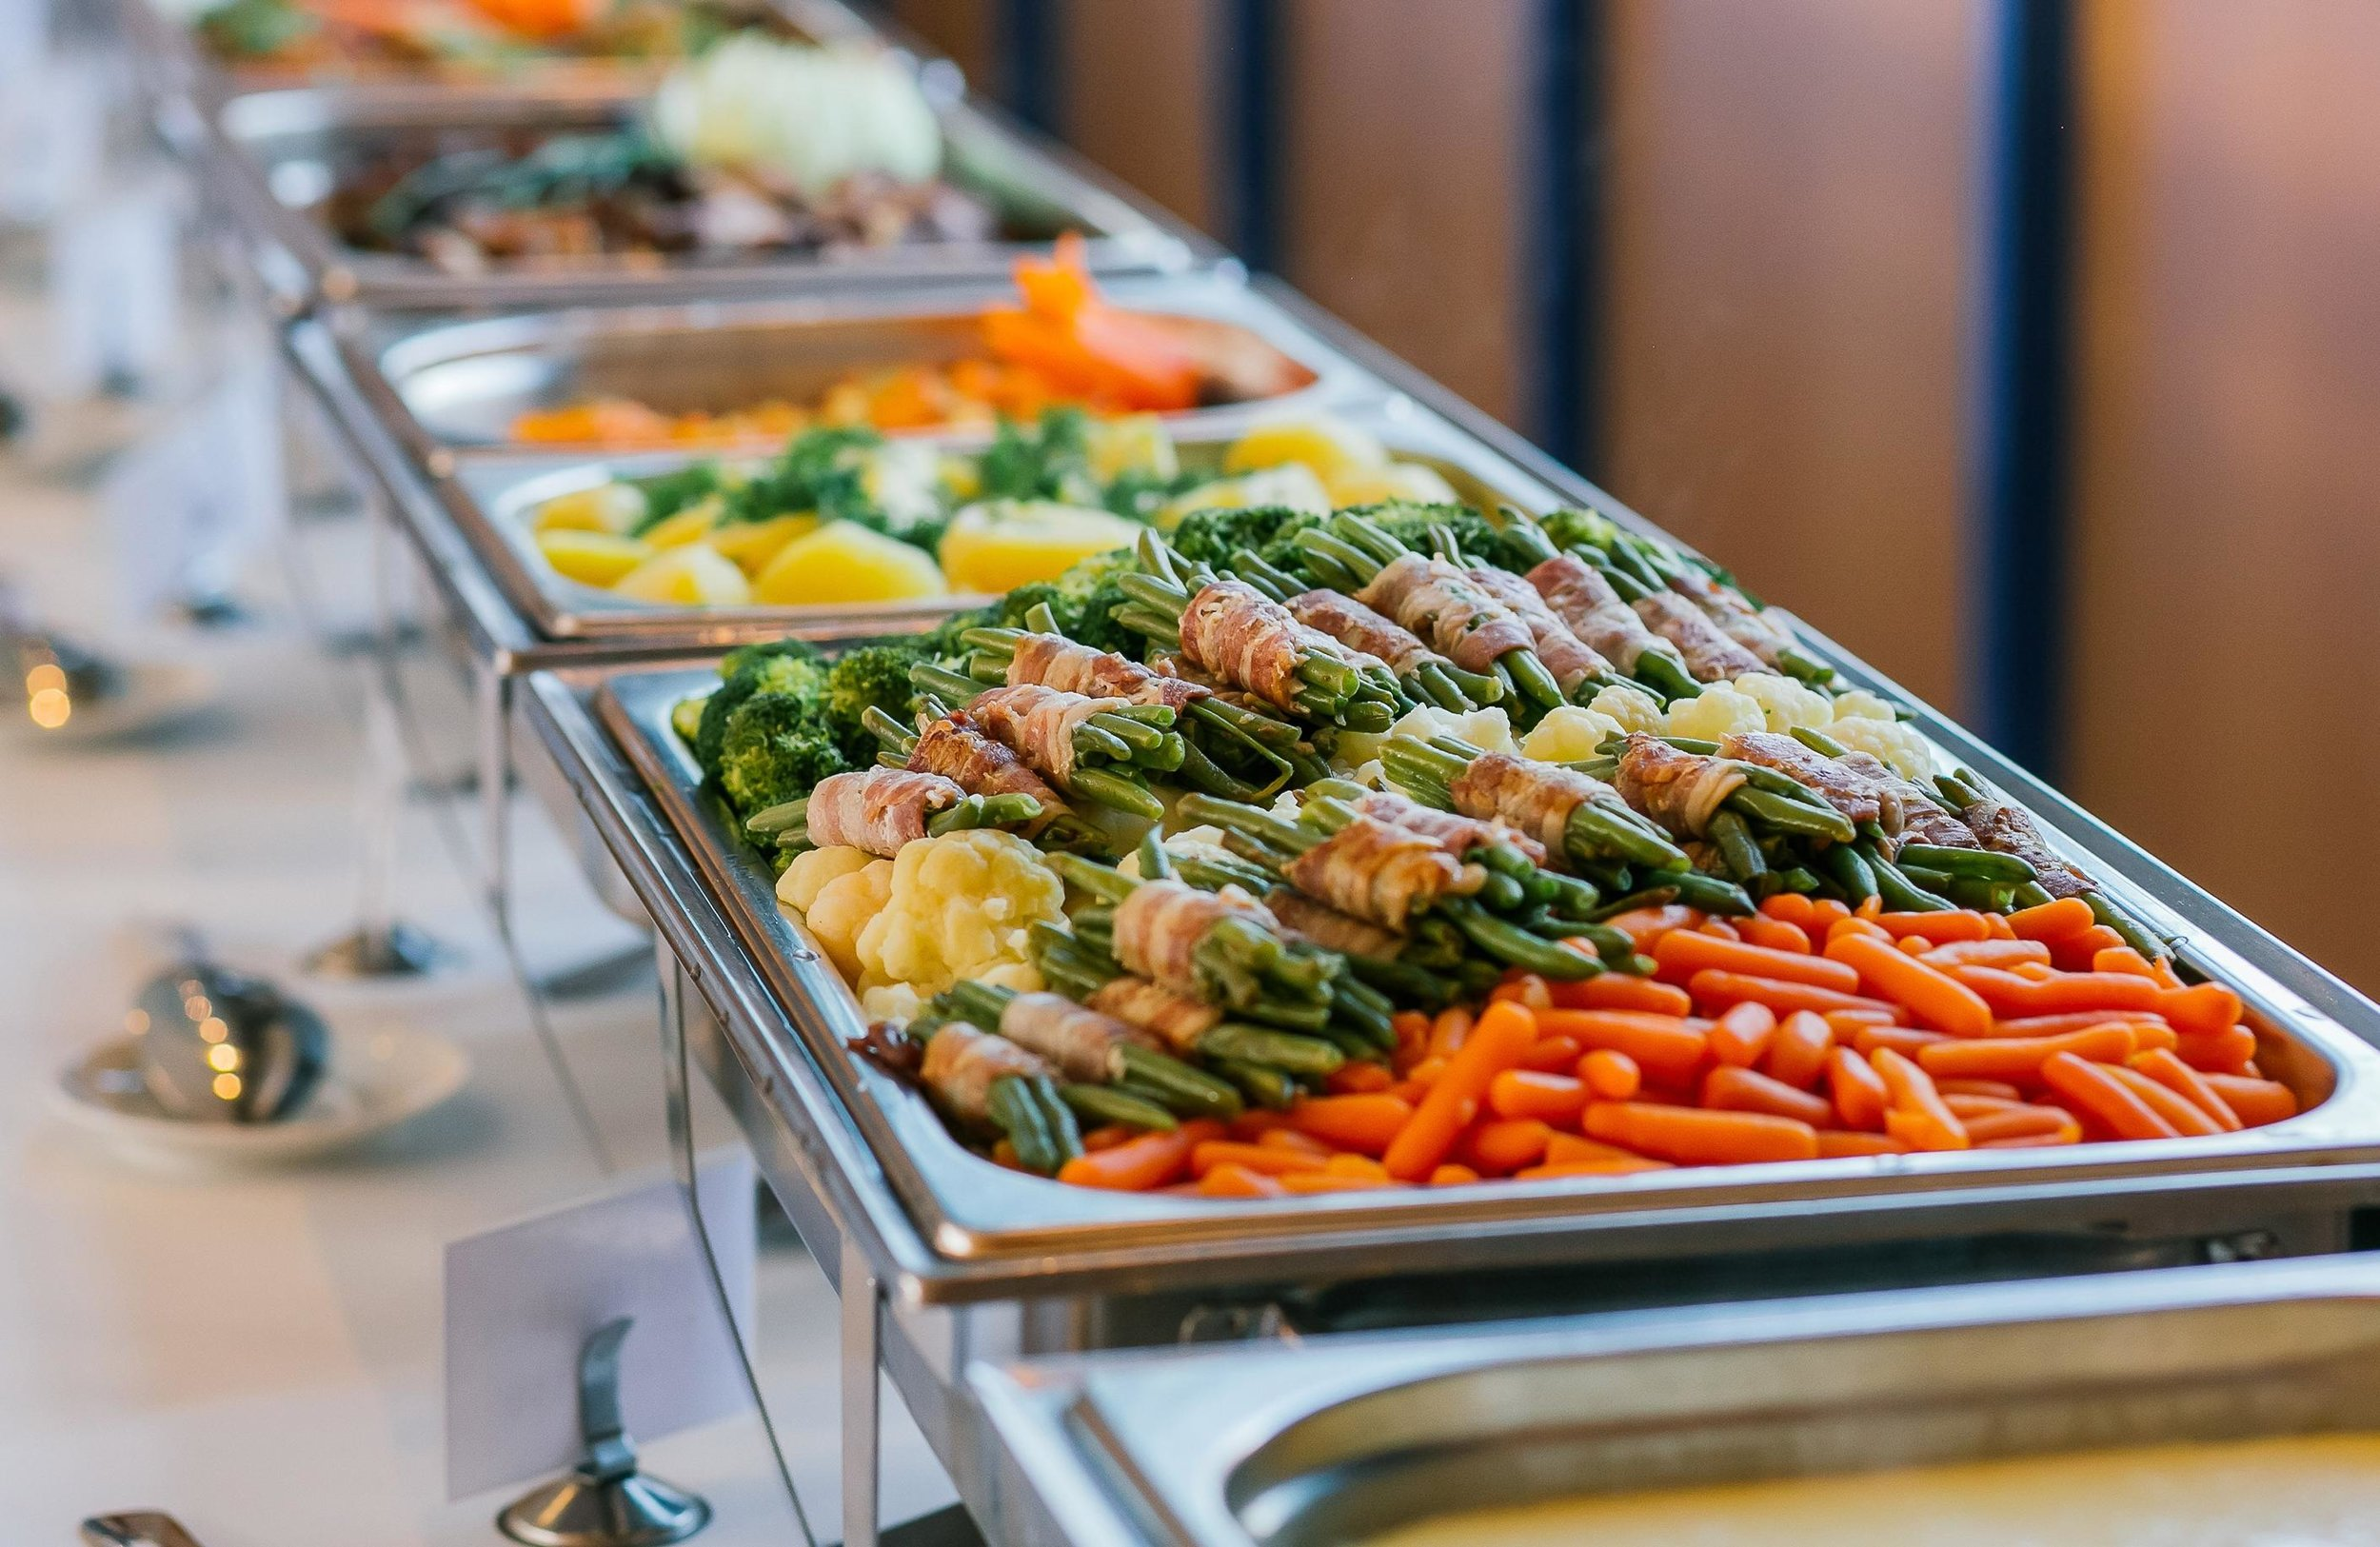 916-erp-catering-services.jpg